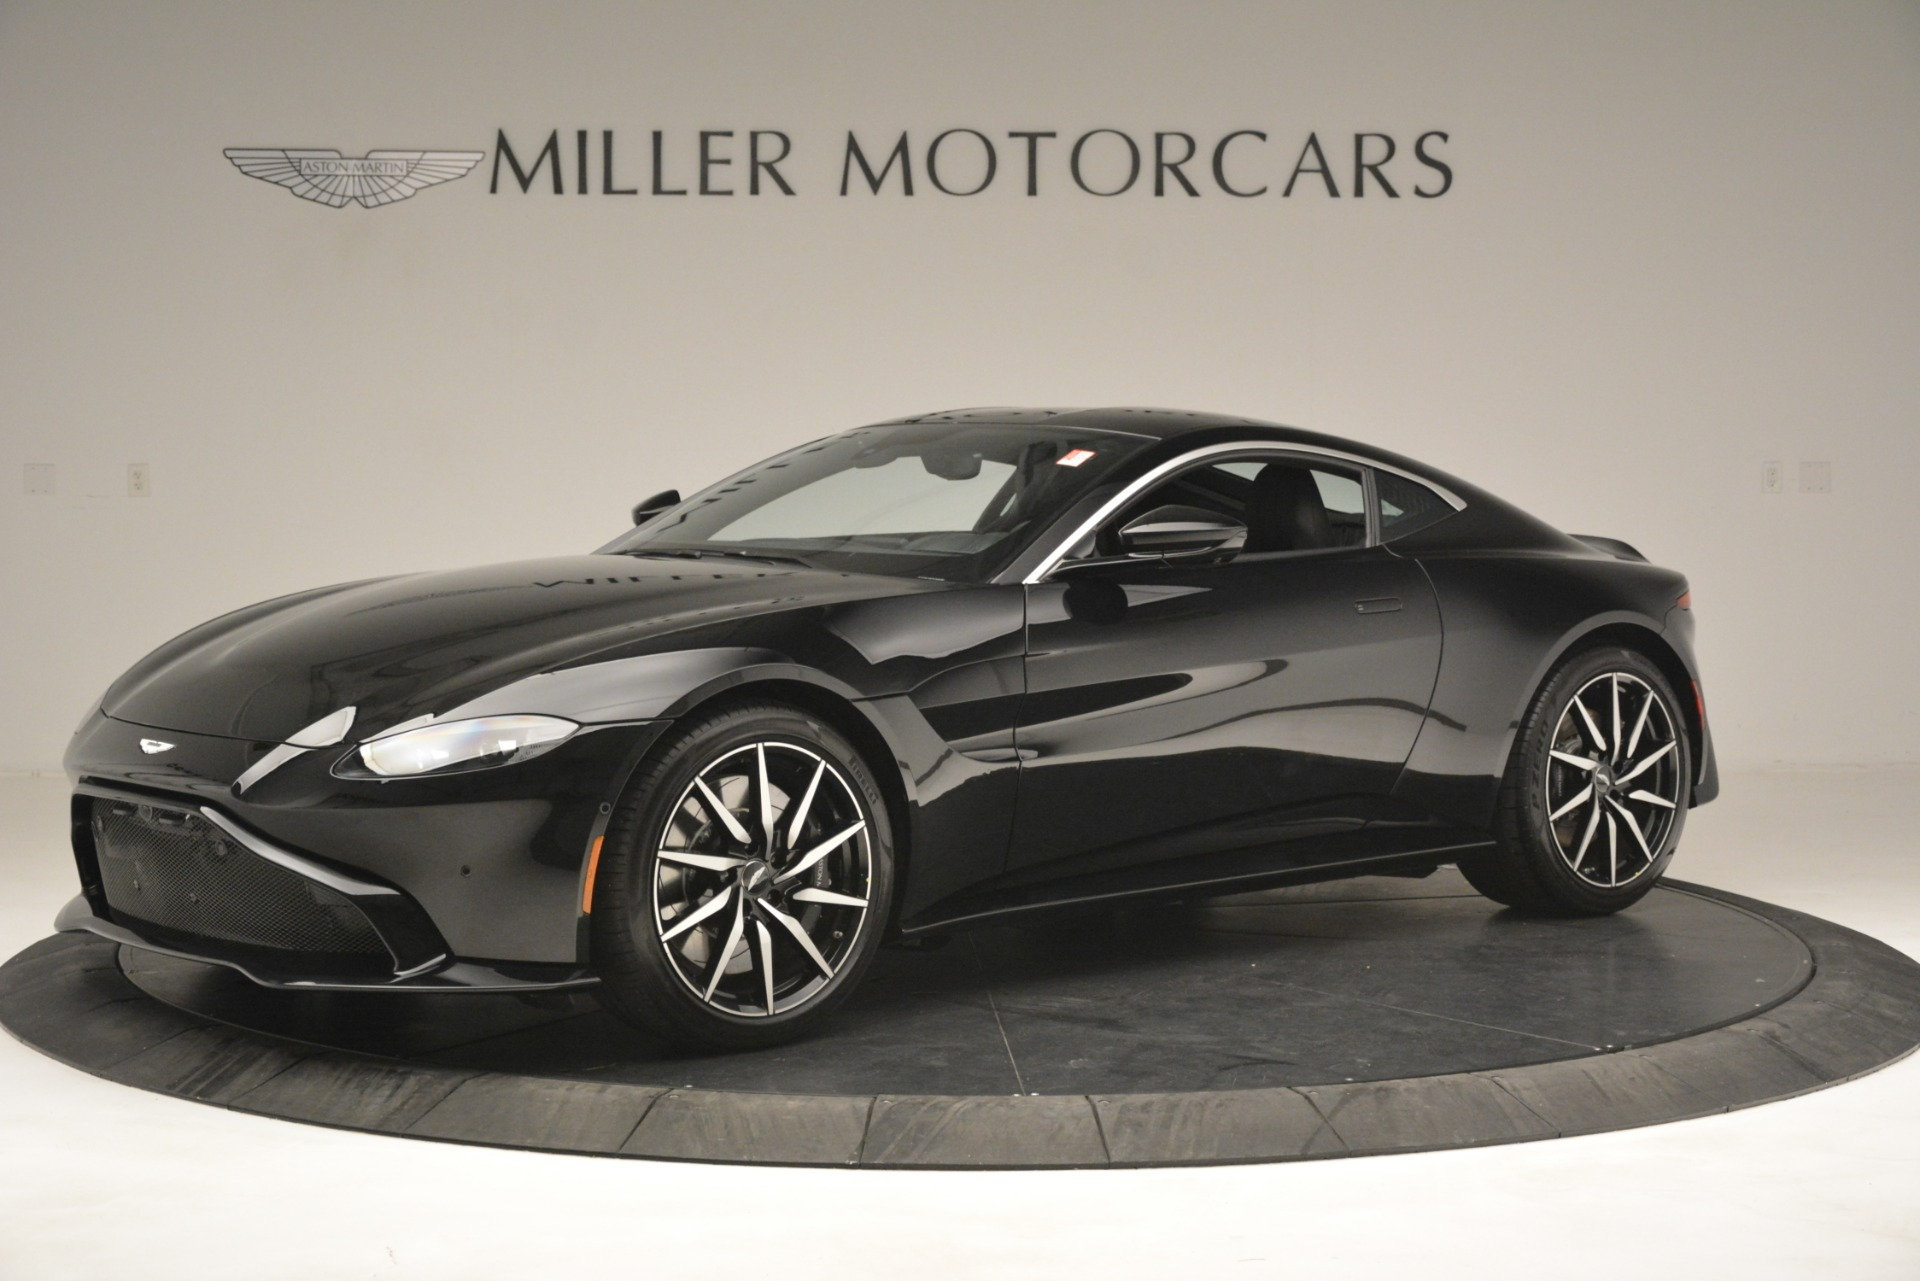 New 2019 Aston Martin Vantage V8 For Sale In Westport, CT 3124_main